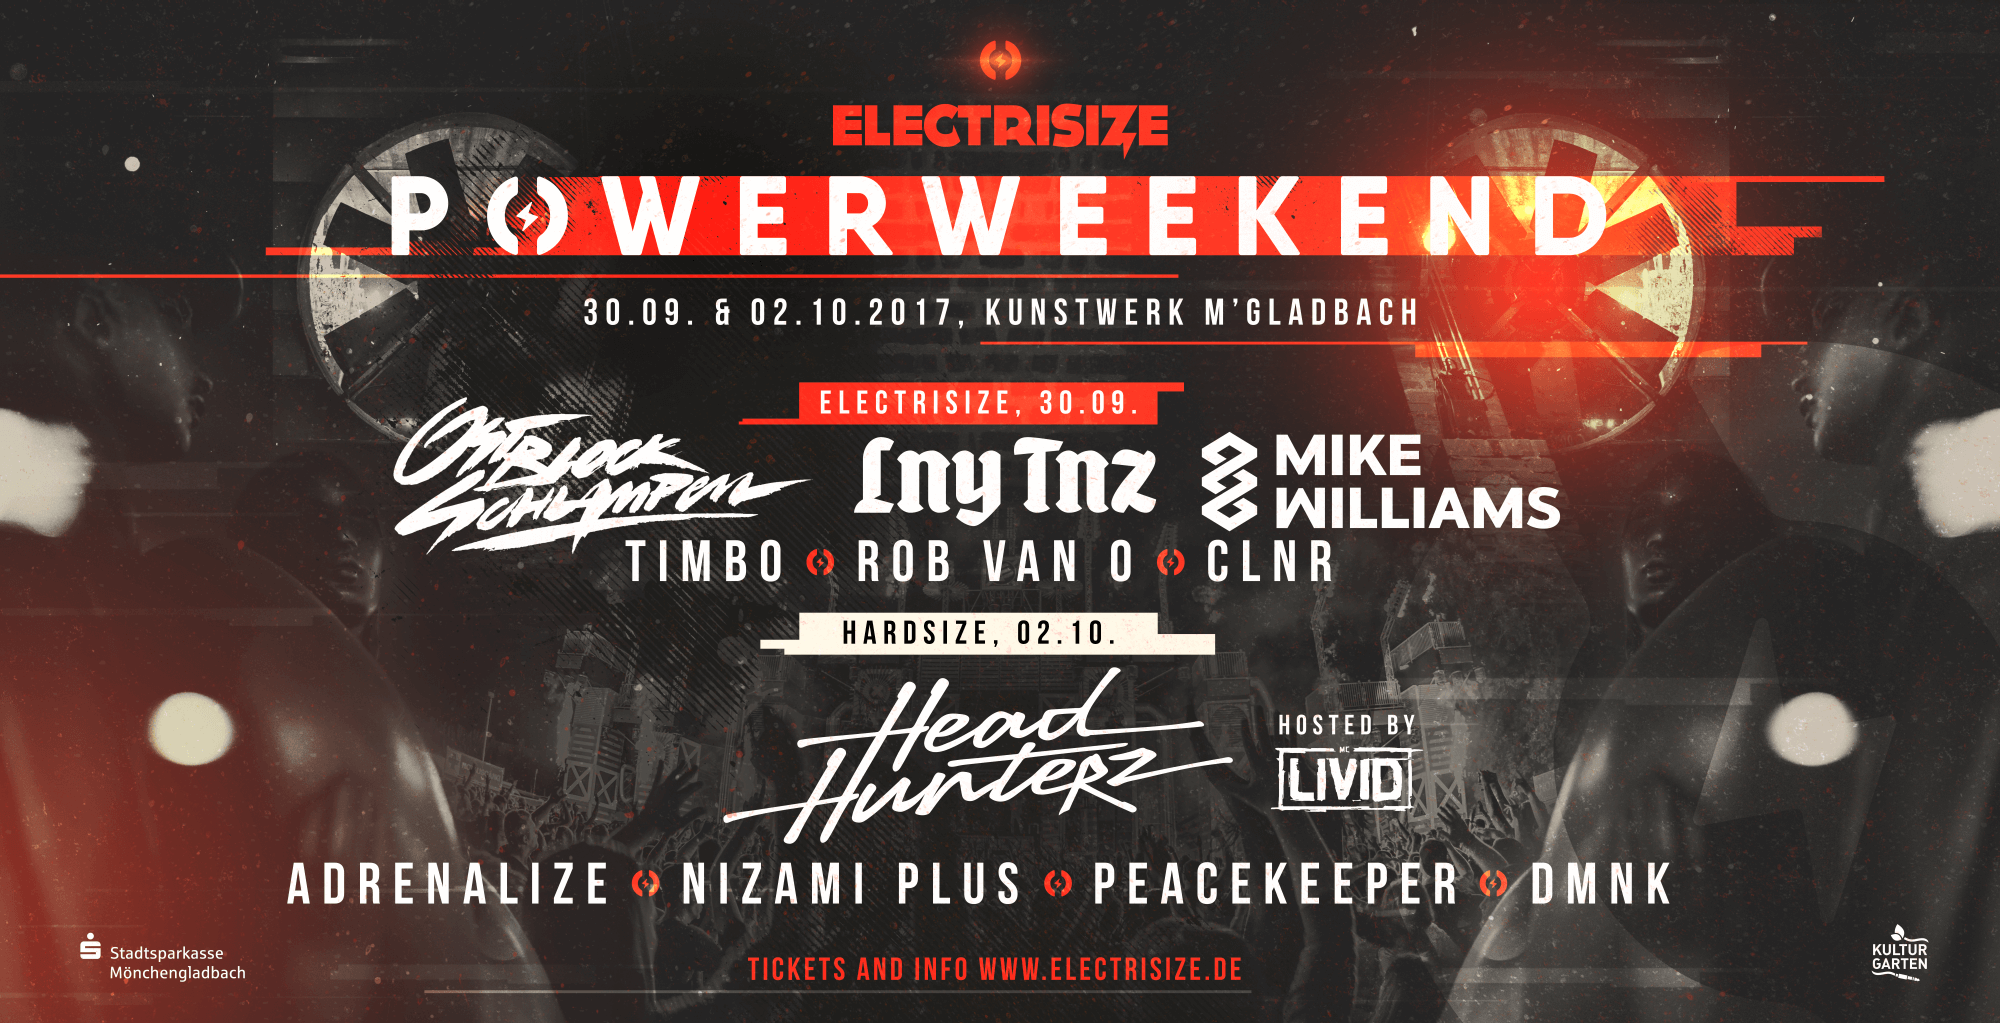 Headhunterz Electrisize Mönchengladbach Lny tnz mike williams